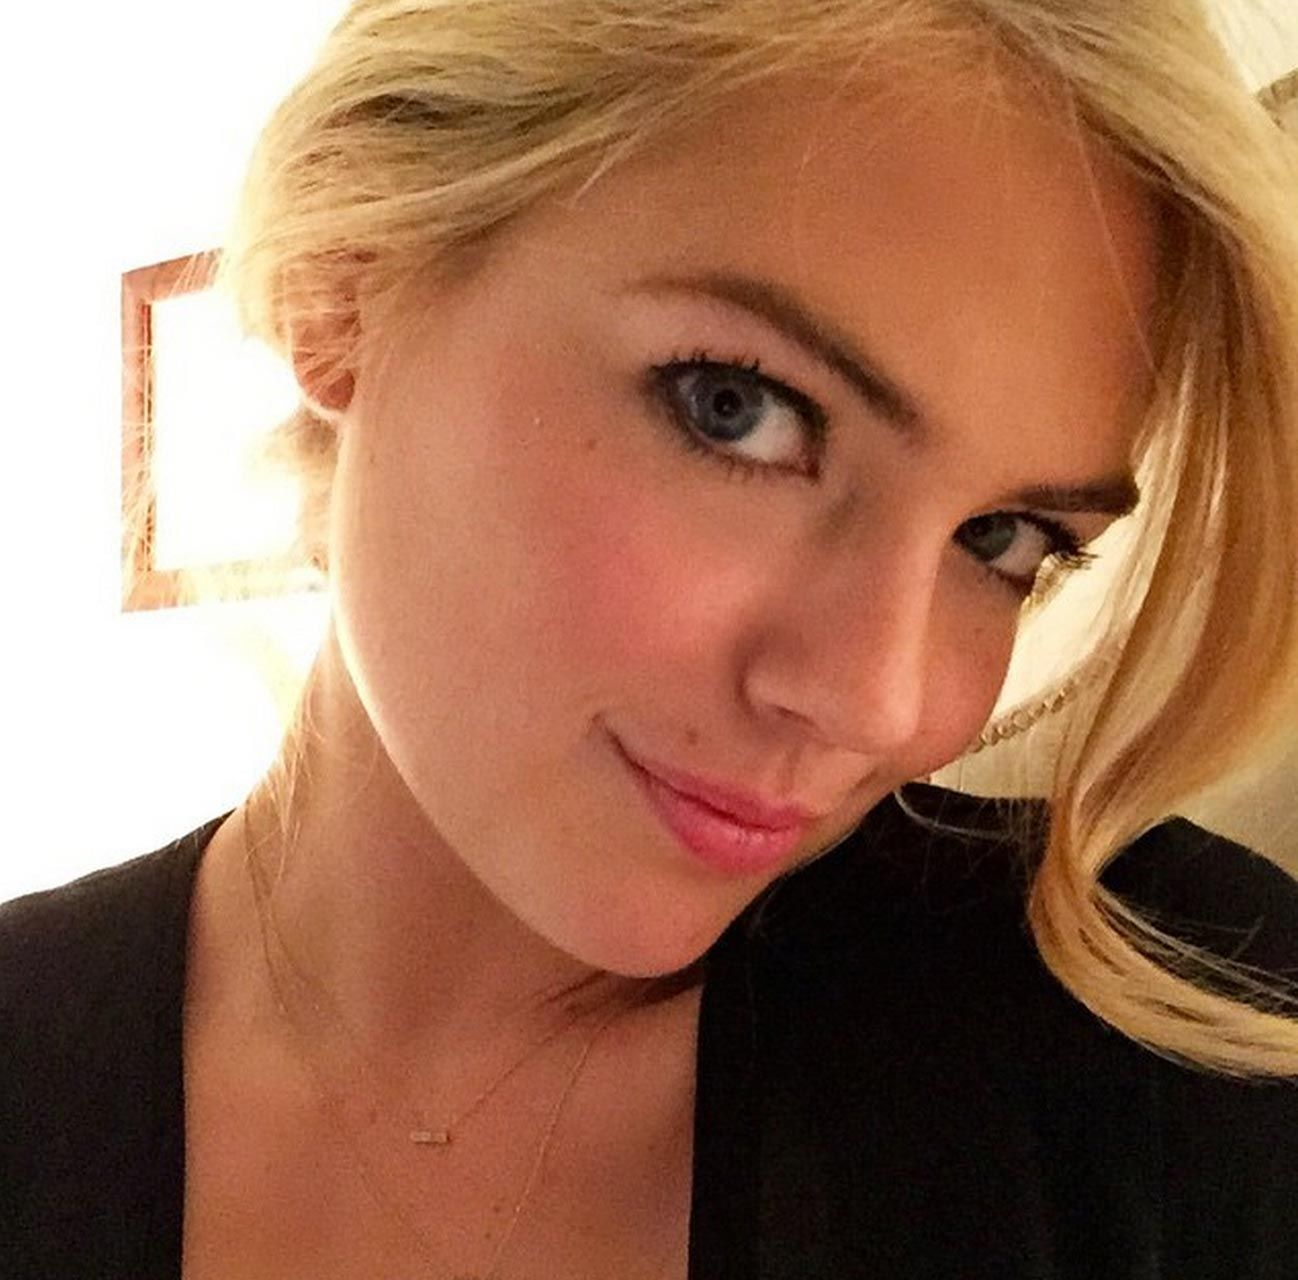 Kate Upton Nude Leaked The Fappening 0030